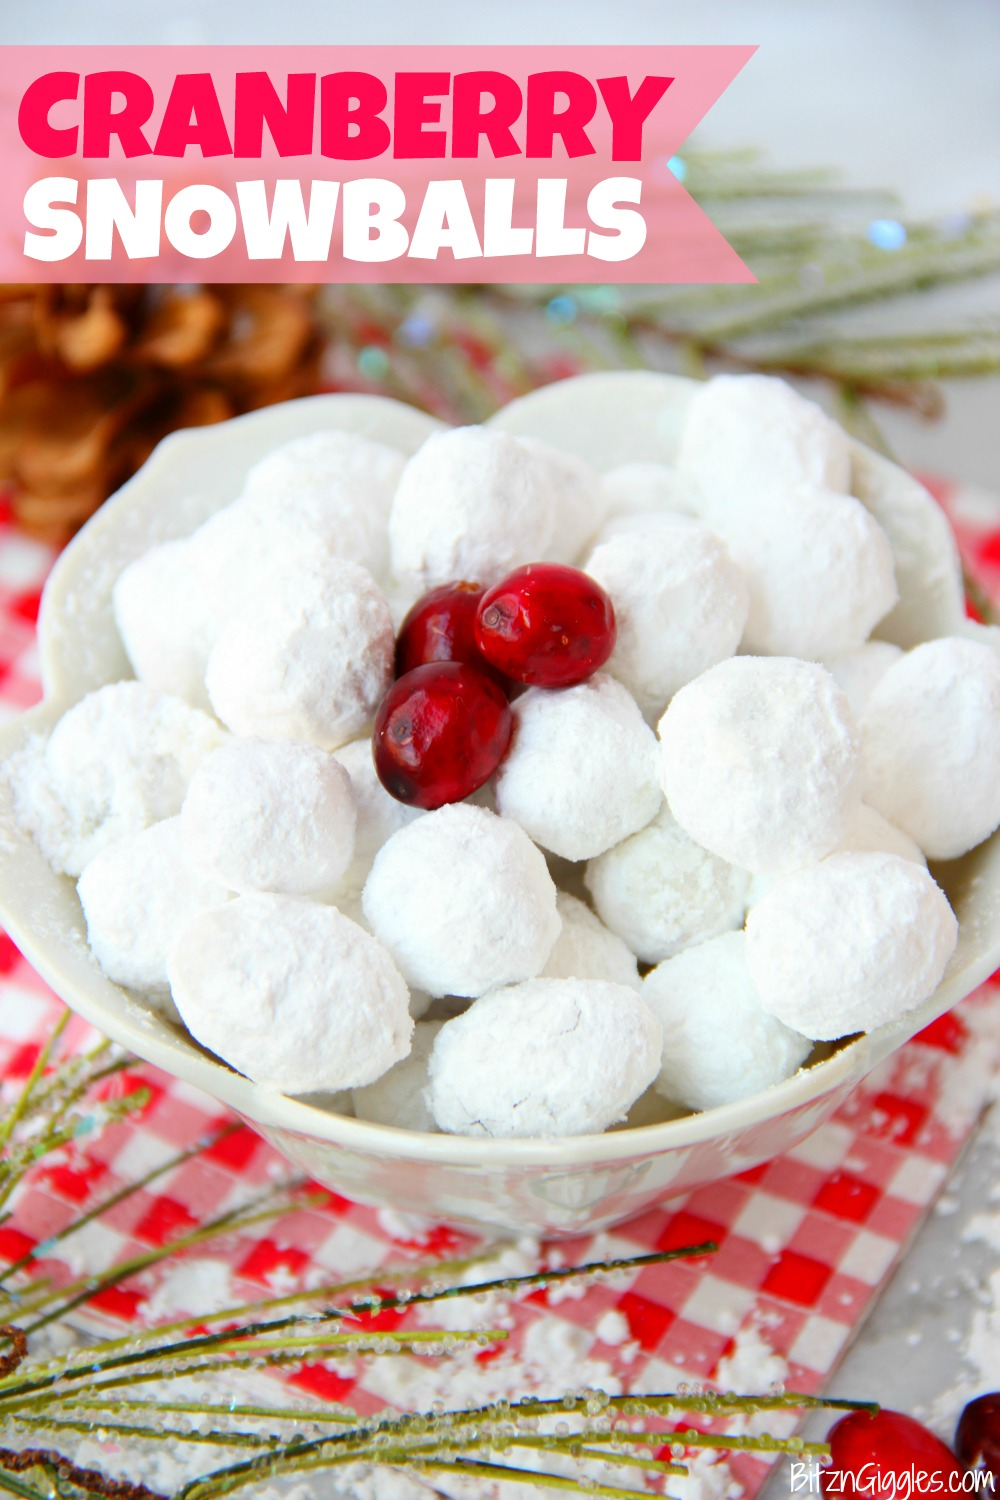 Cranberry Snowballs -Fresh cranberries rolled in powdered sugar then baked and chilled. Surprise your guests with a burst of delicious cranberry when they bite into these sweet and tangy confections!